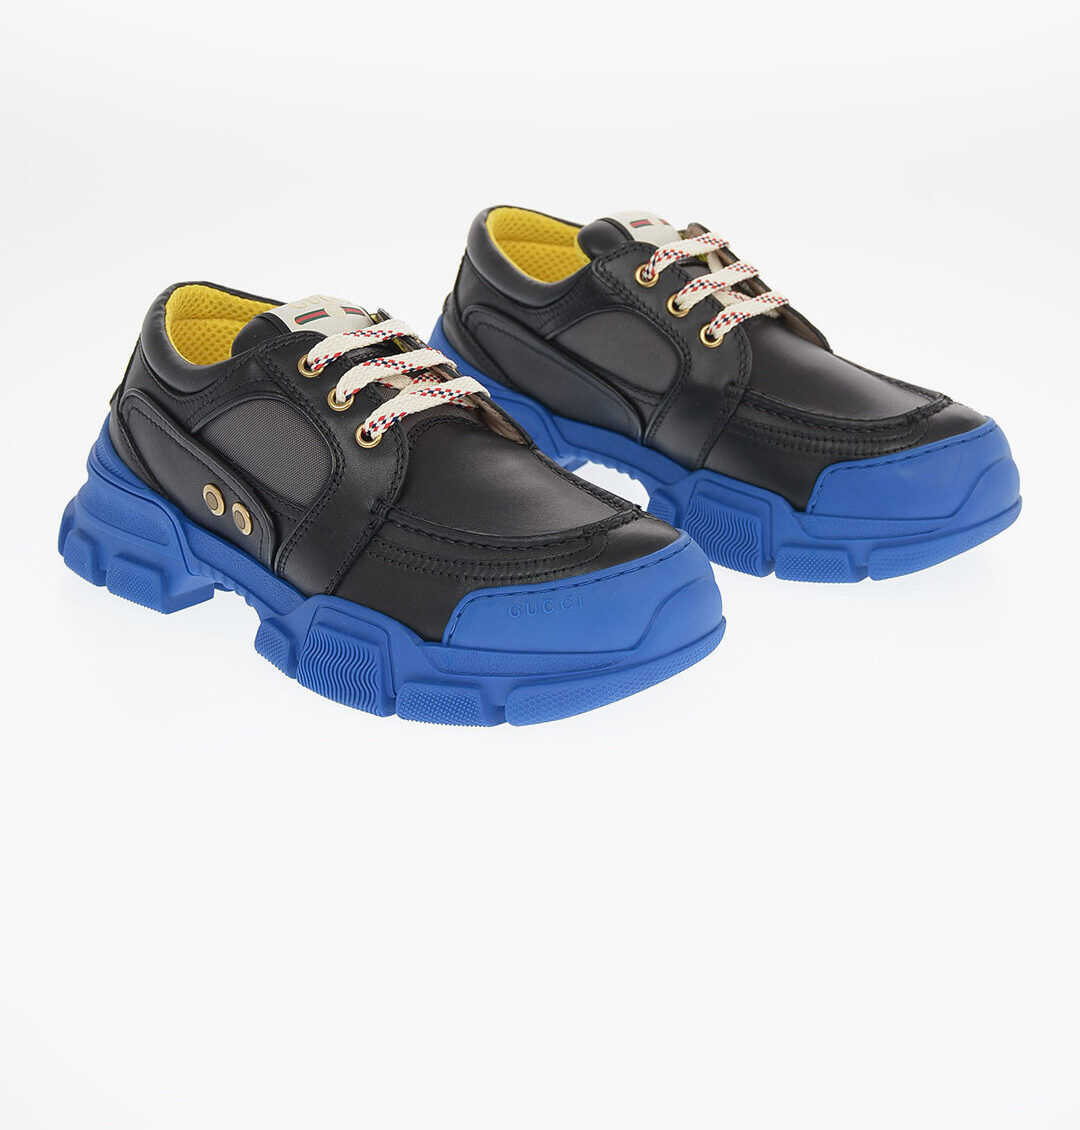 Gucci Soft Leather STREET STYLE PLAIN Track Sneakers BLACK imagine b-mall.ro